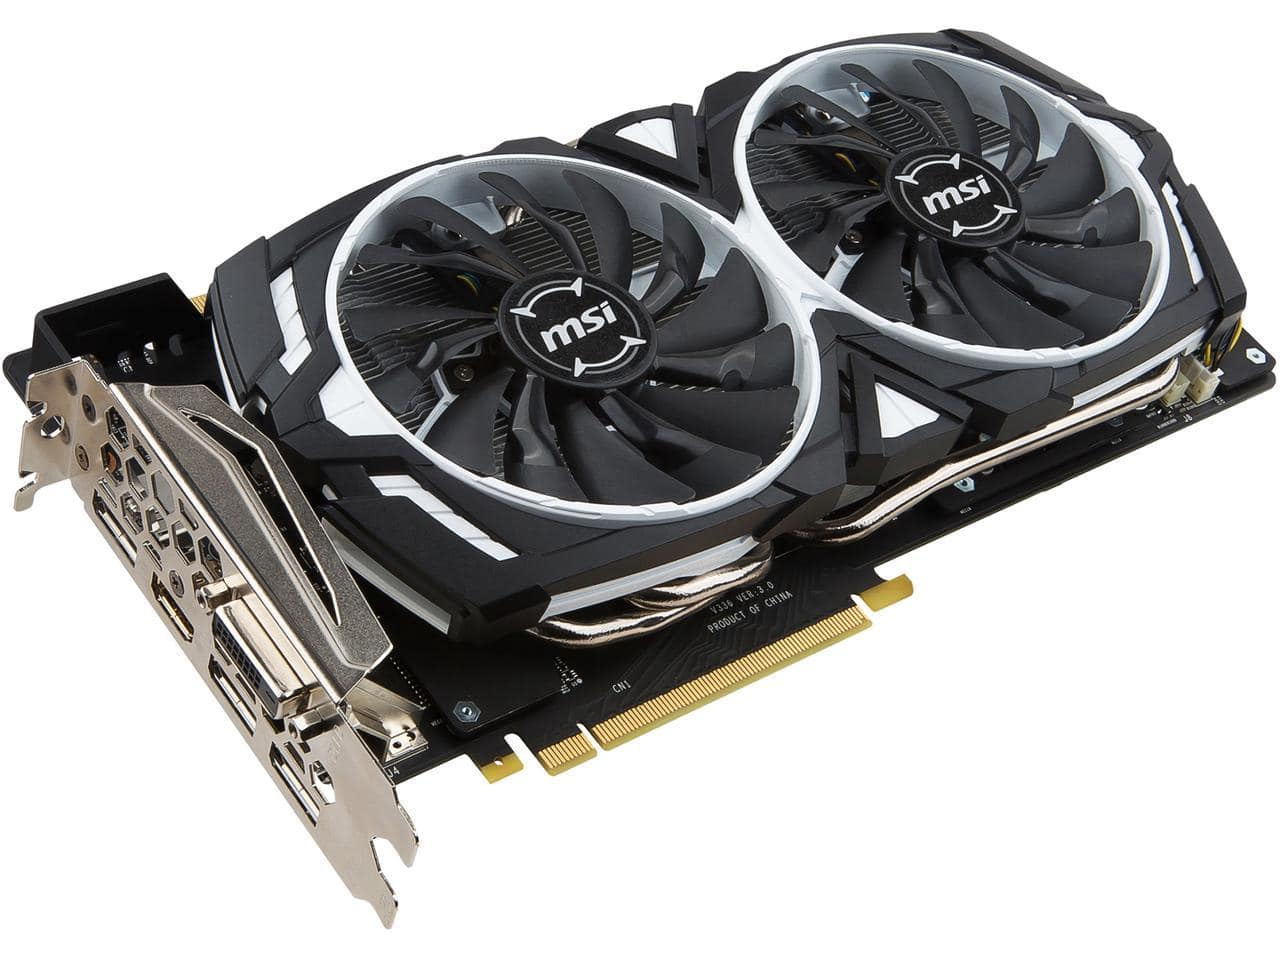 MSI GeForce GTX 1080 ARMOR 8G OC Video Card + Destiny 2 & FS $520 AR